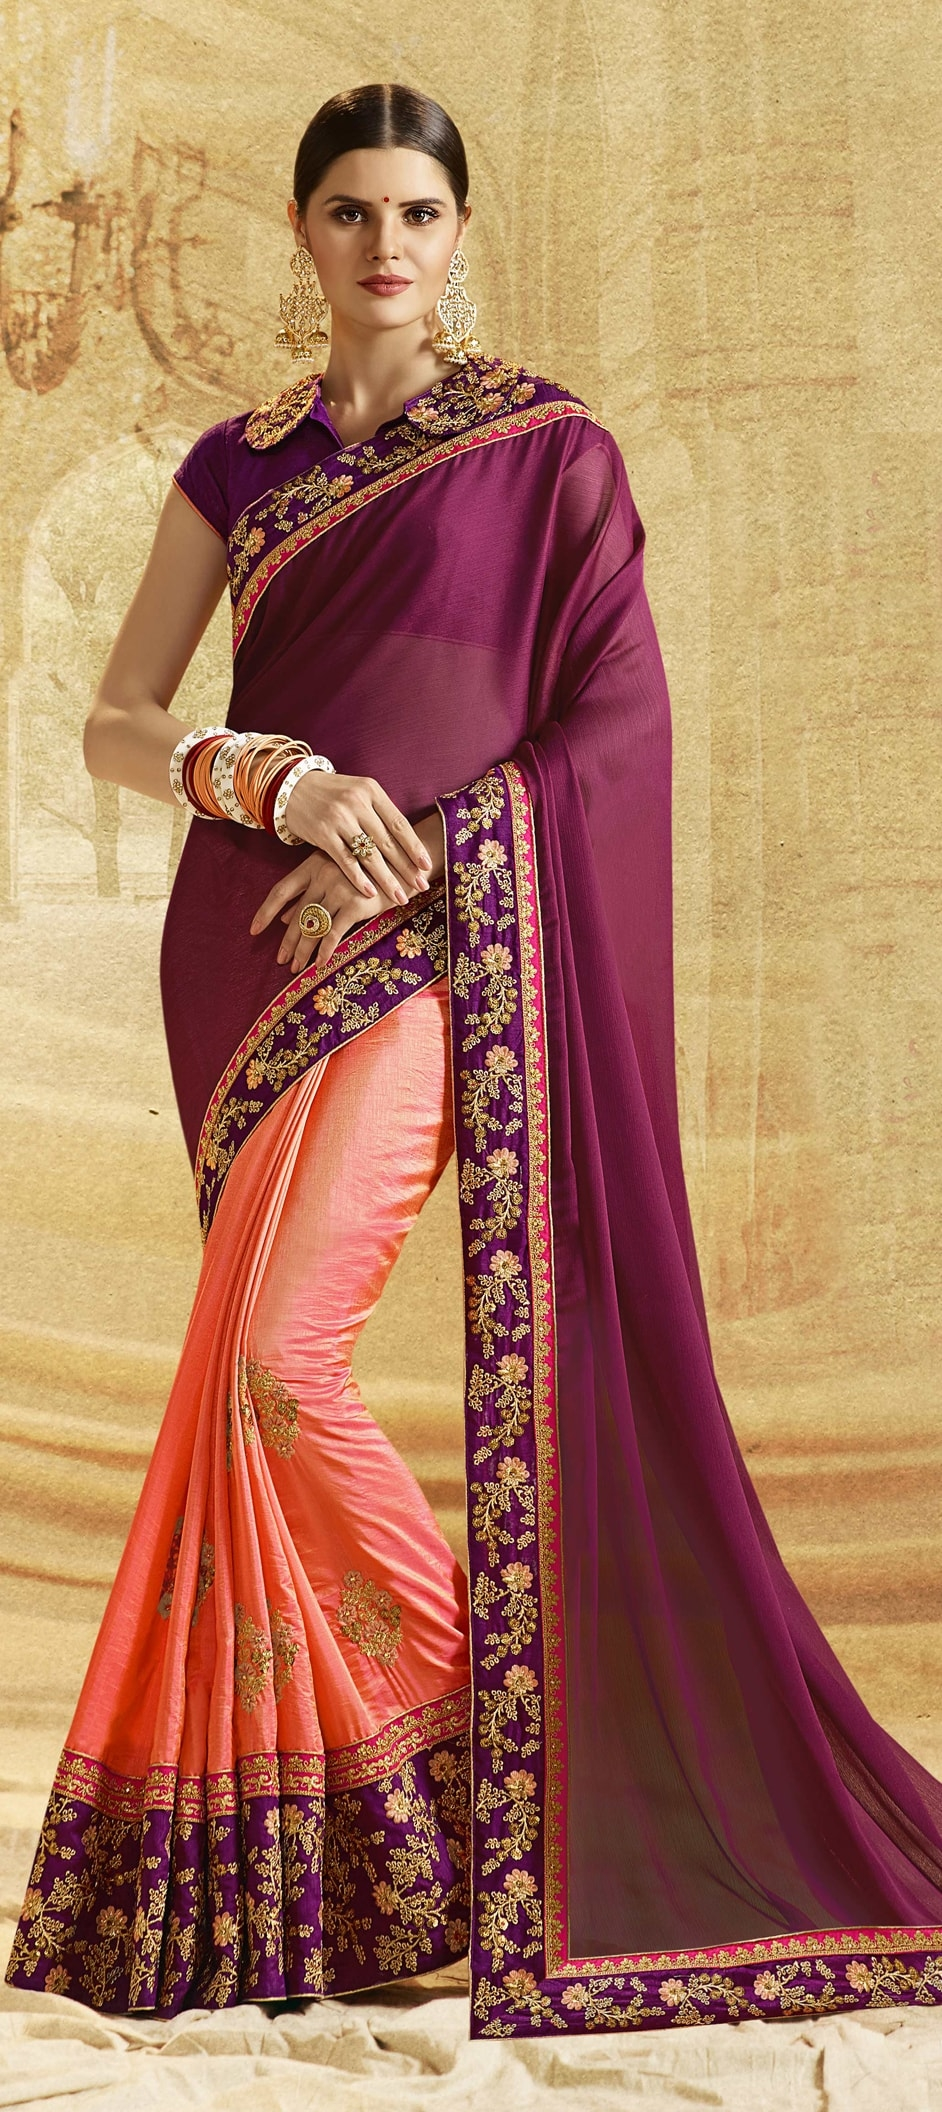 768220: Orange, Purple and Violet color family Embroidered Sarees ...